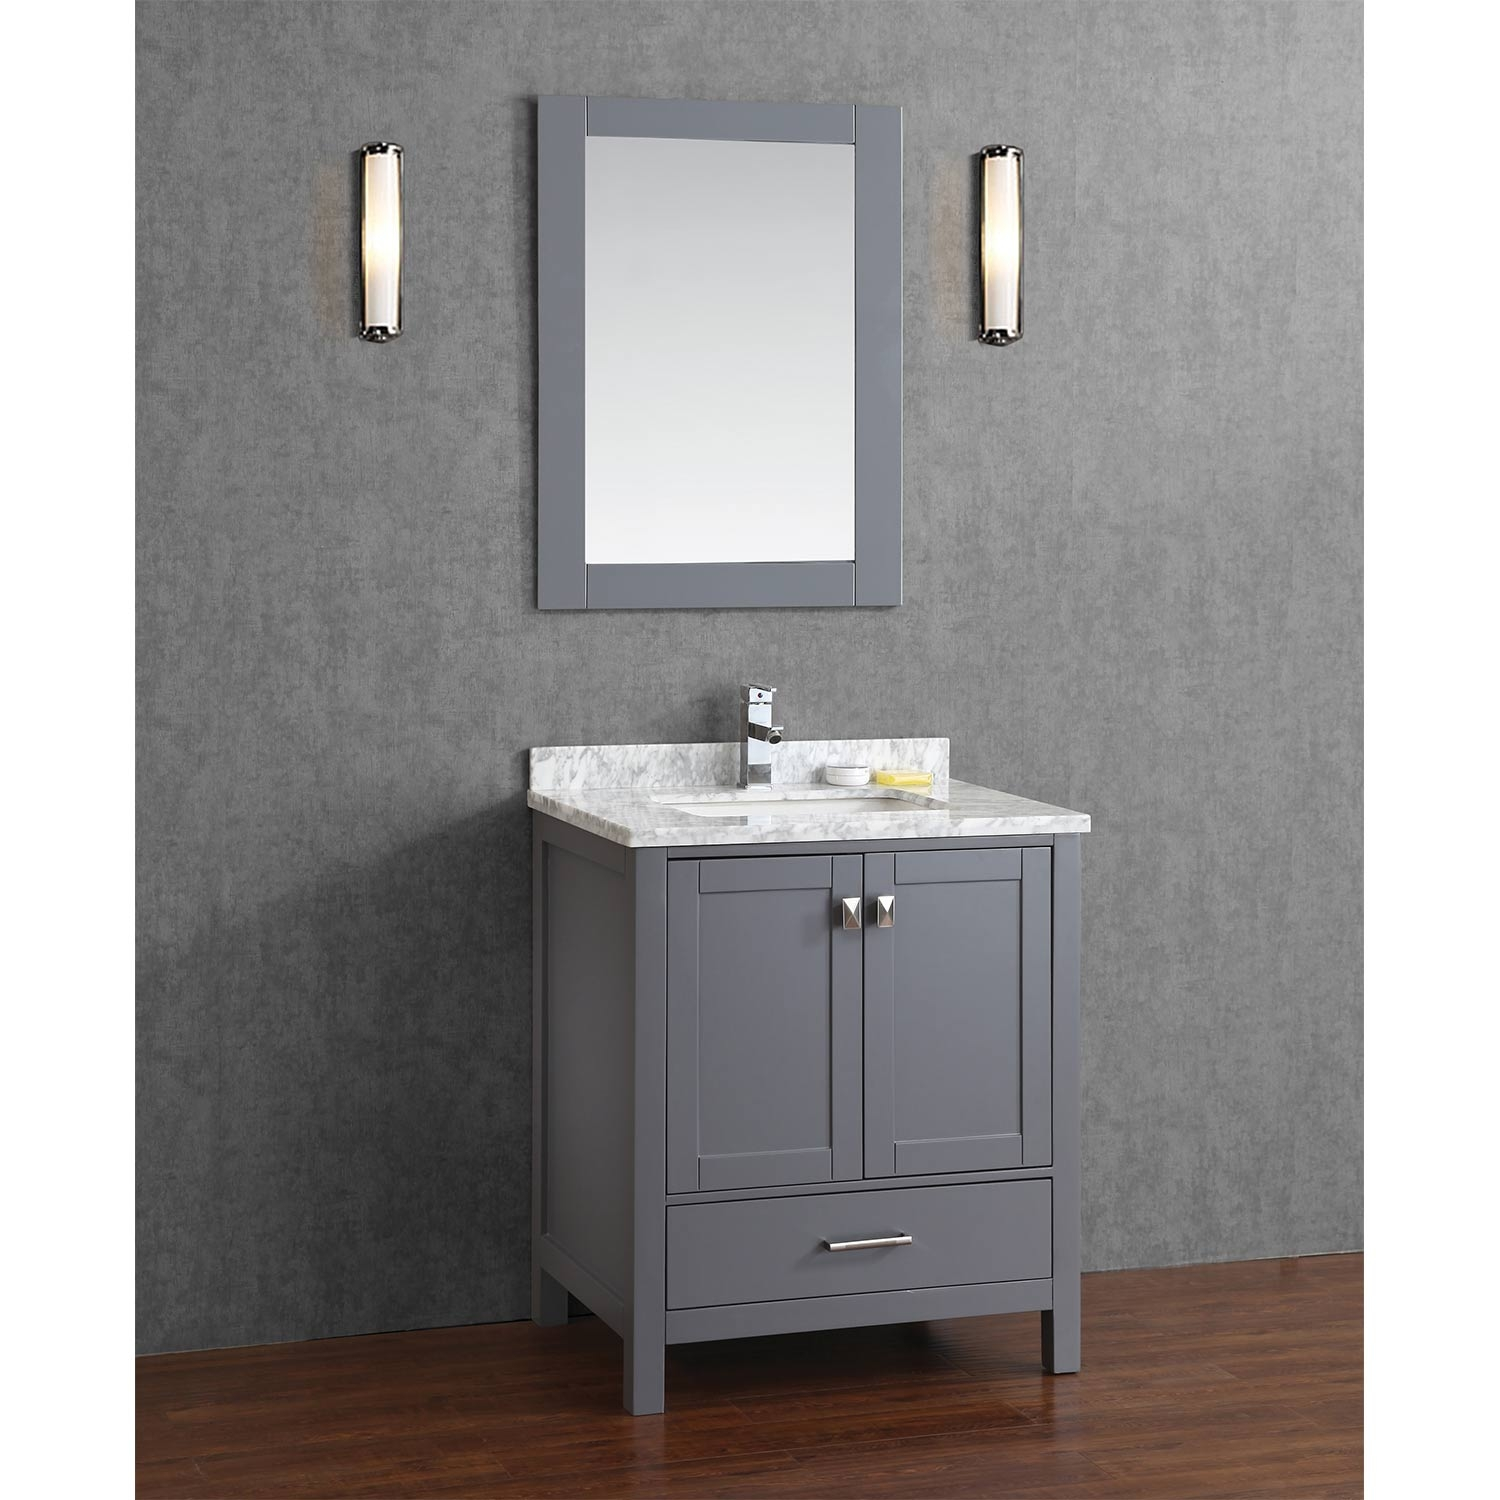 Solid Wood Bathroom Vanity 36